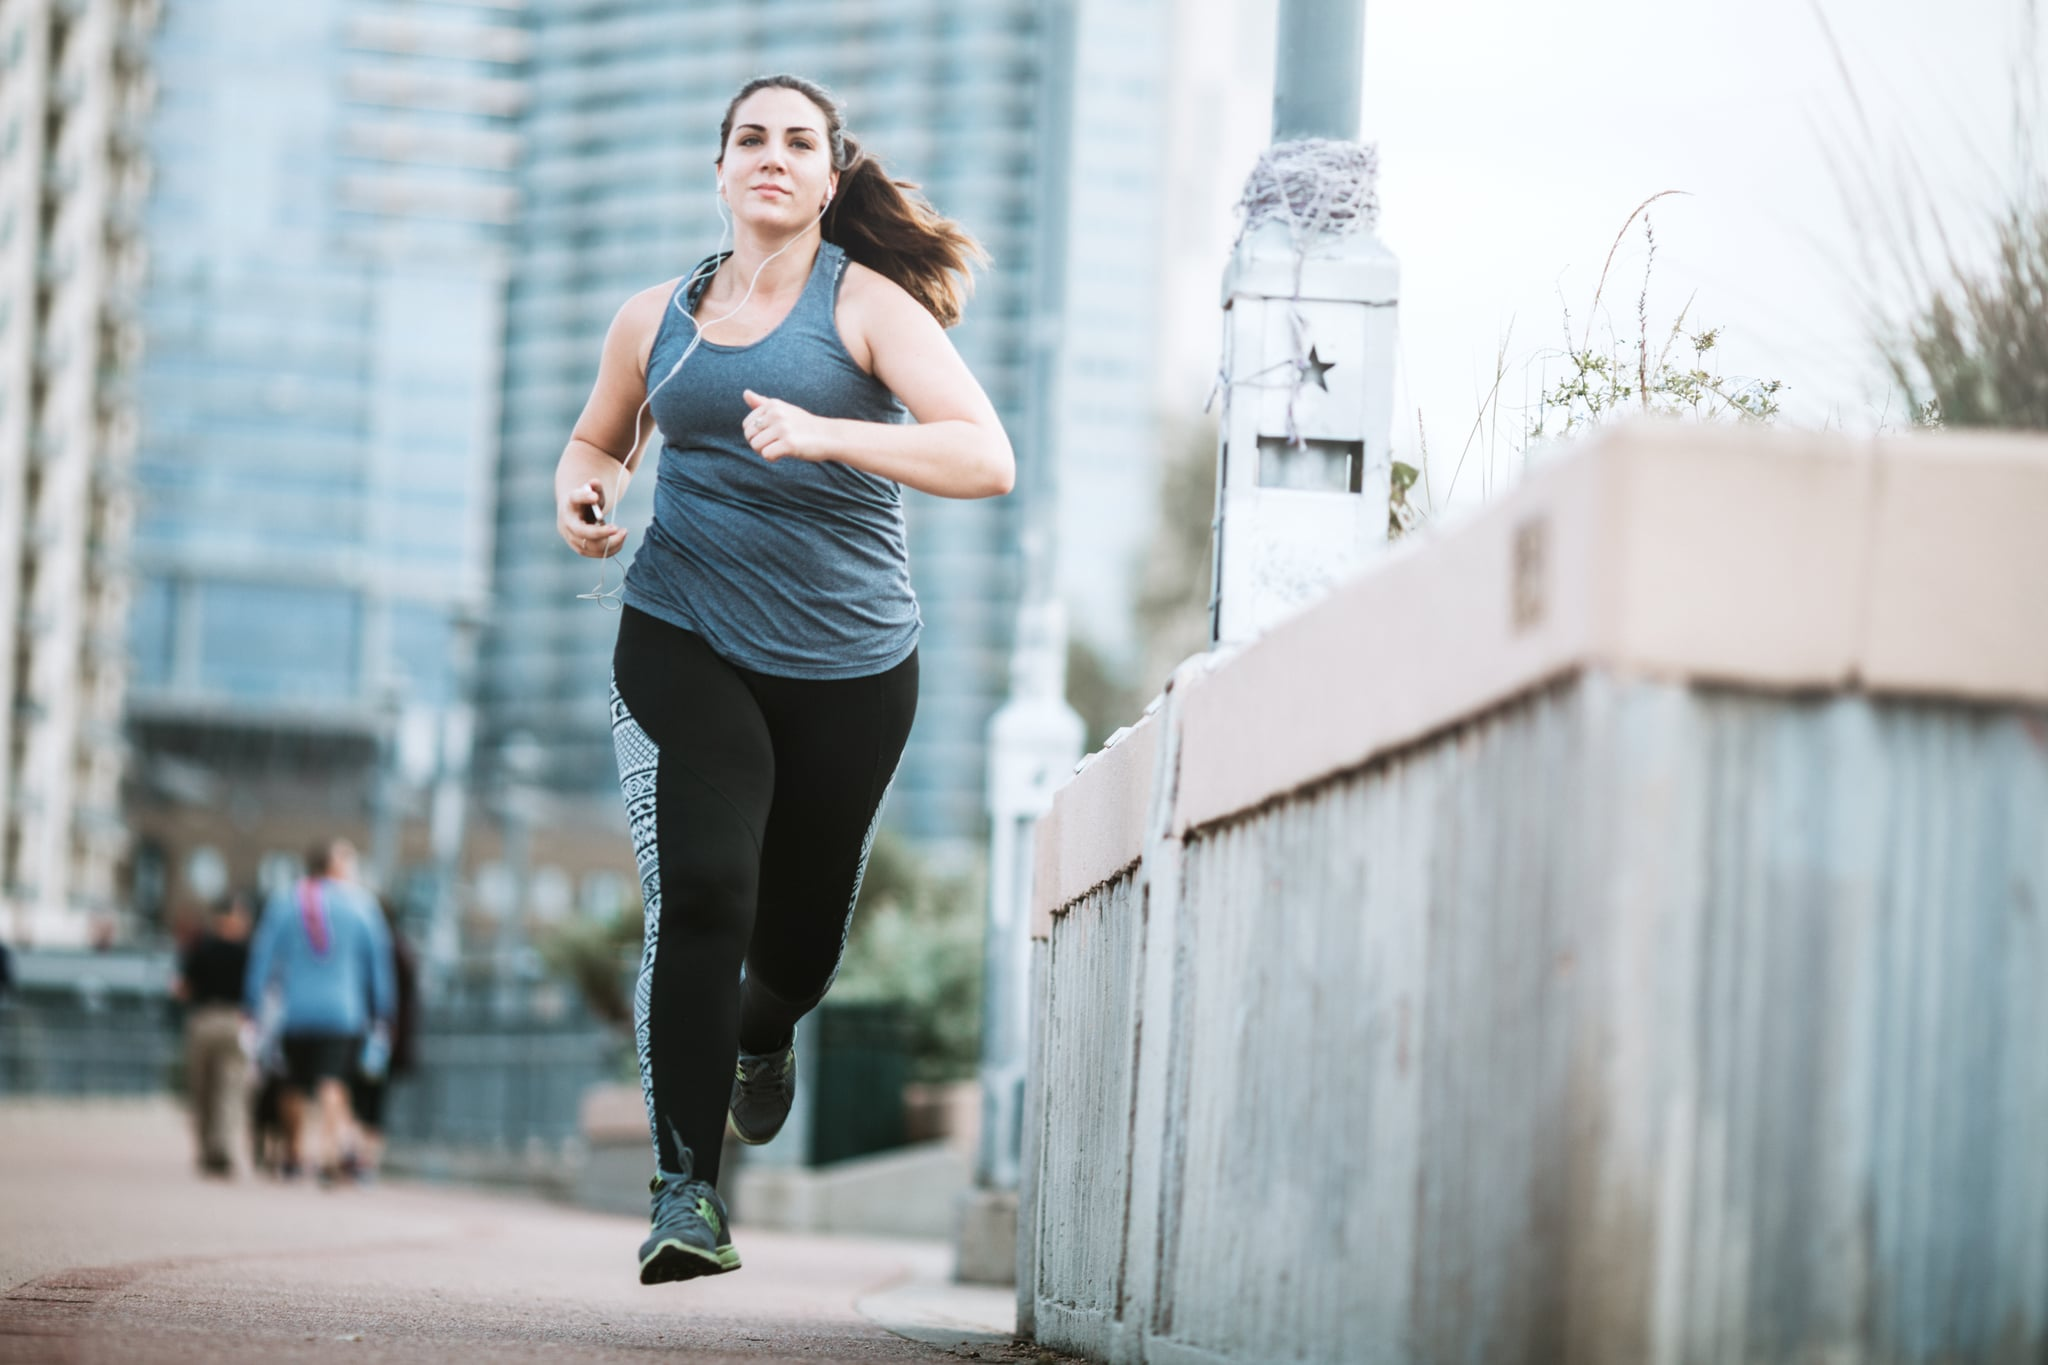 Yes, You Can Lose Weight Running For as Little as 30 Minutes at a Time — Here's How to Do It